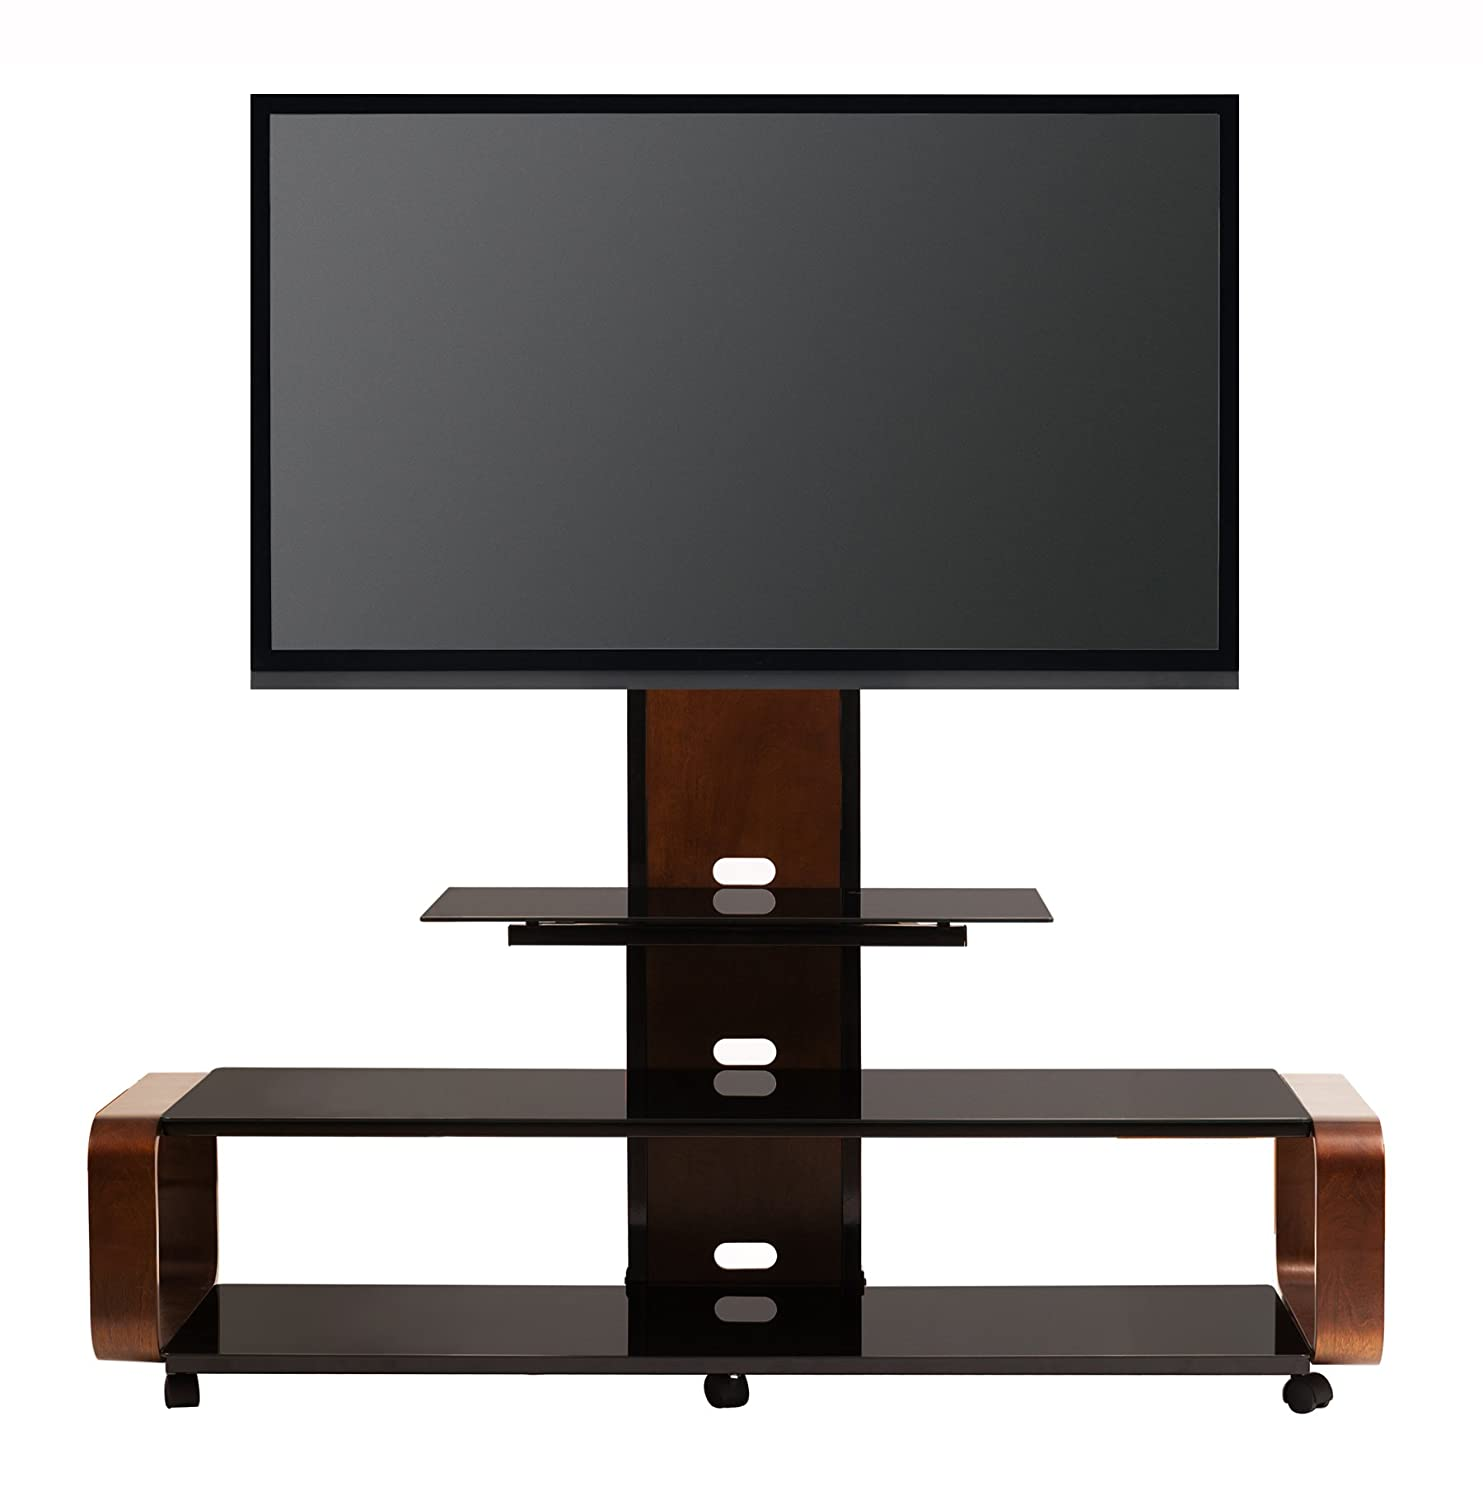 Amazon.com: TransDeco TD655DB Multi Function 3 In 1 TV Stand With Universal  Mounting System For 35 To 80 Inch LCD/LED TV: Kitchen U0026 Dining